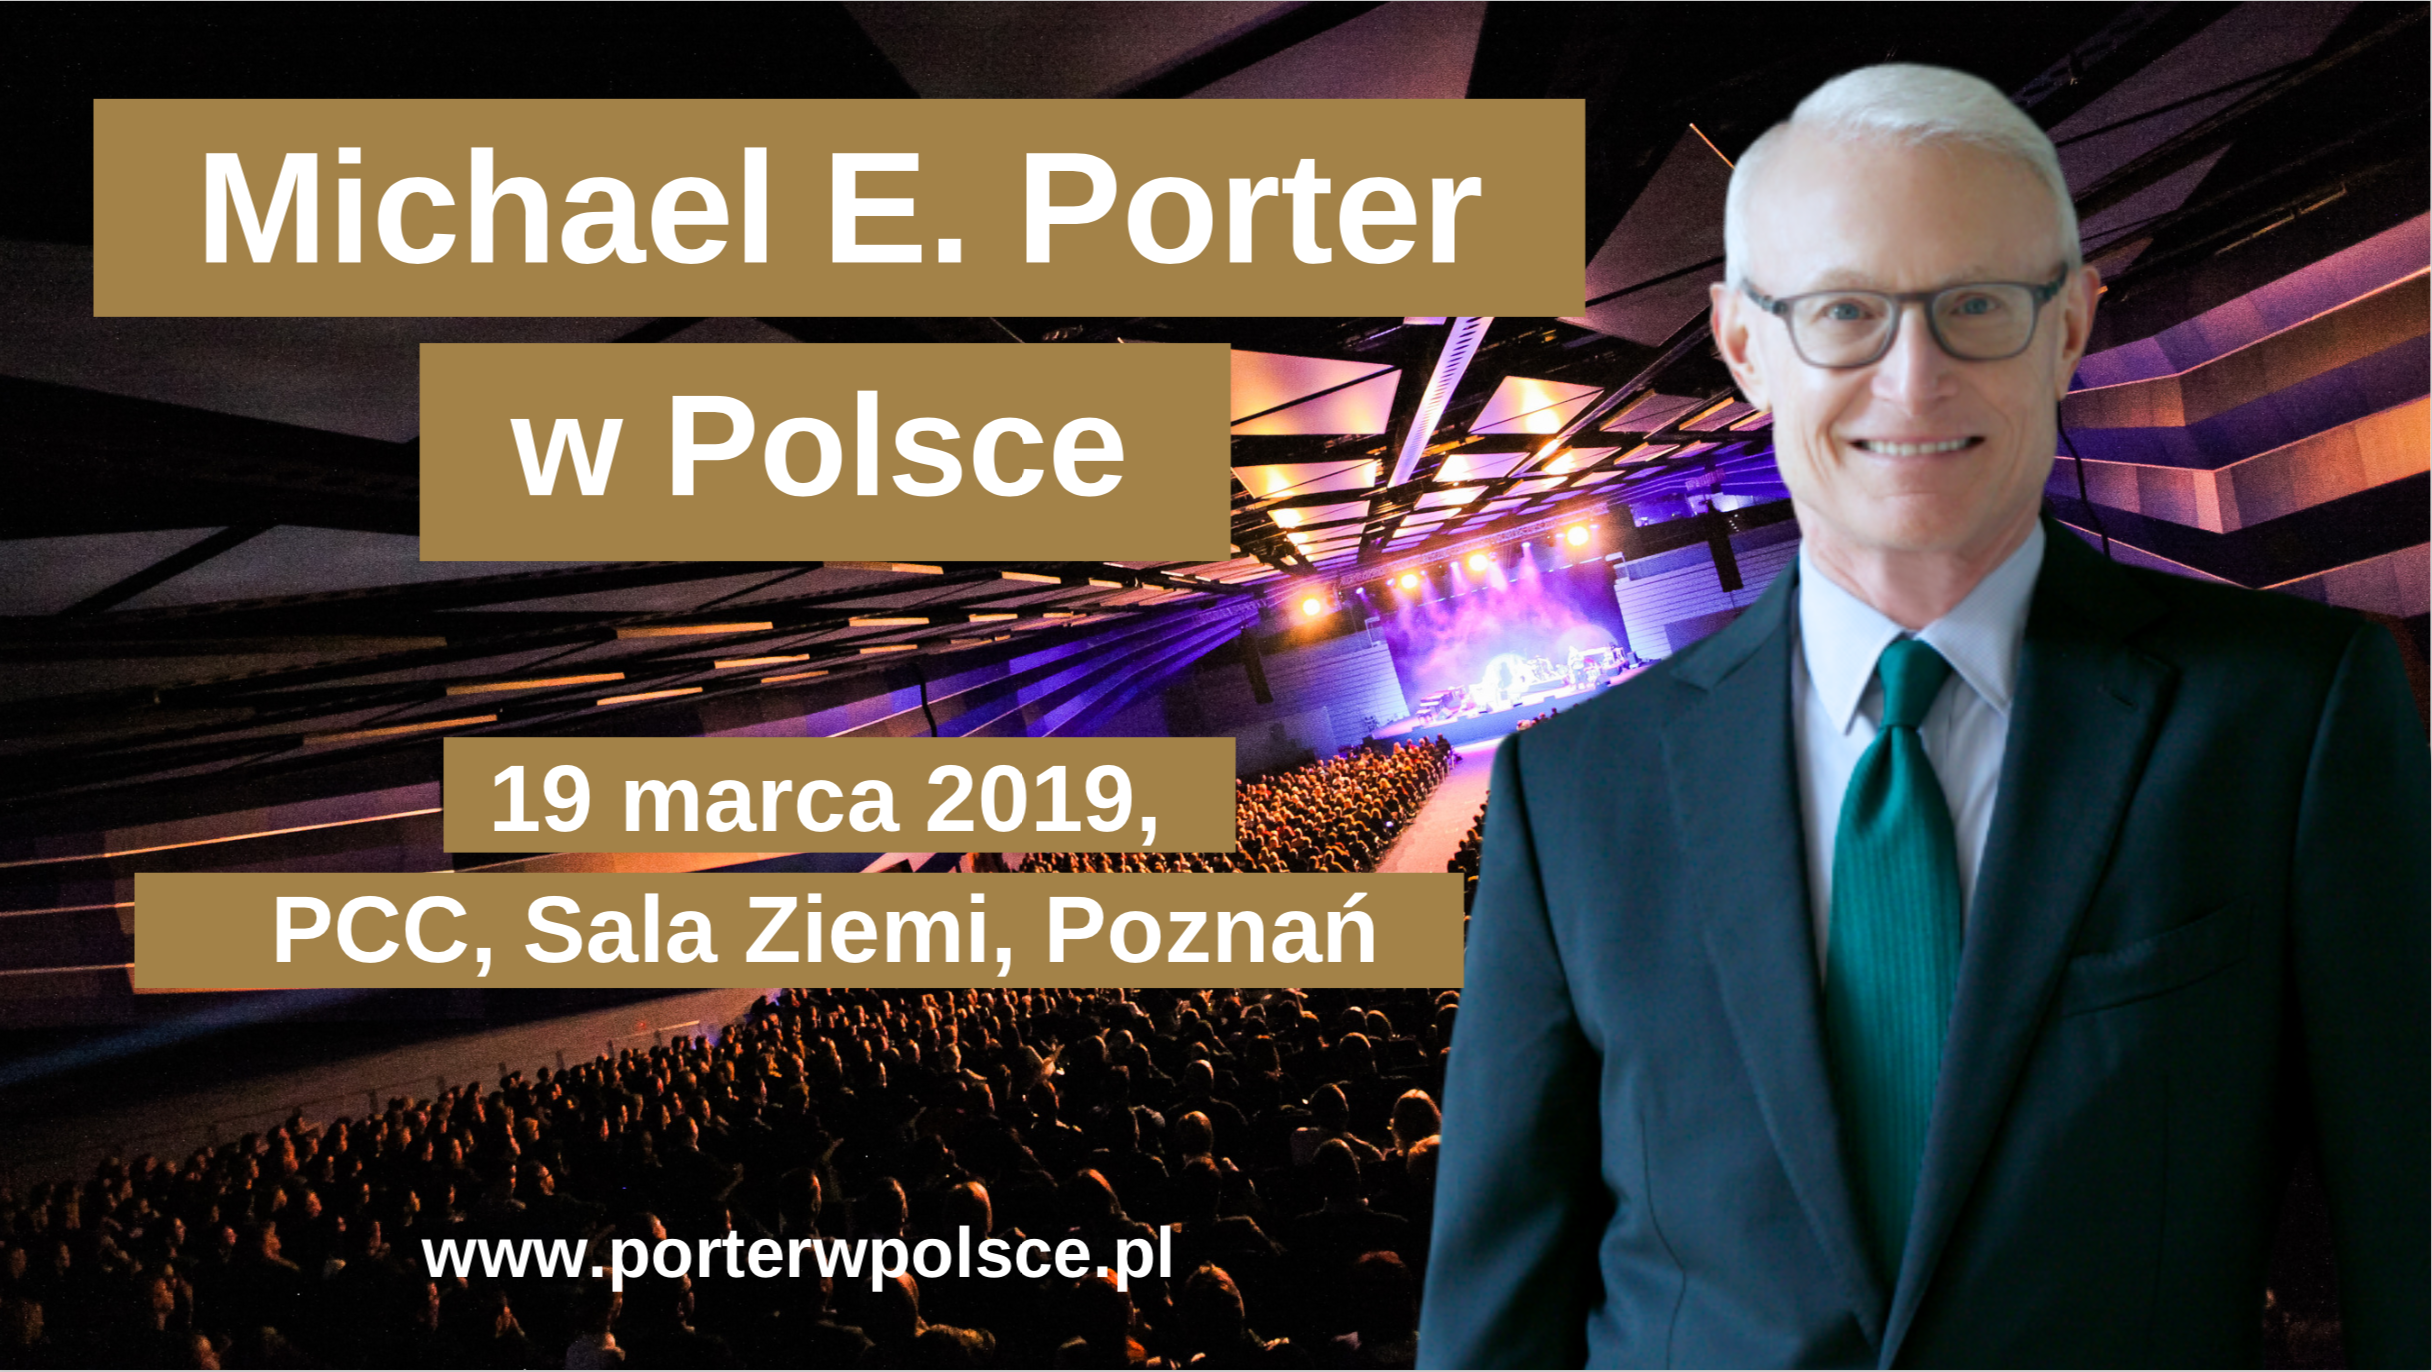 Golden-marketing-hipoalergiczni-porter-w-polsce-2019